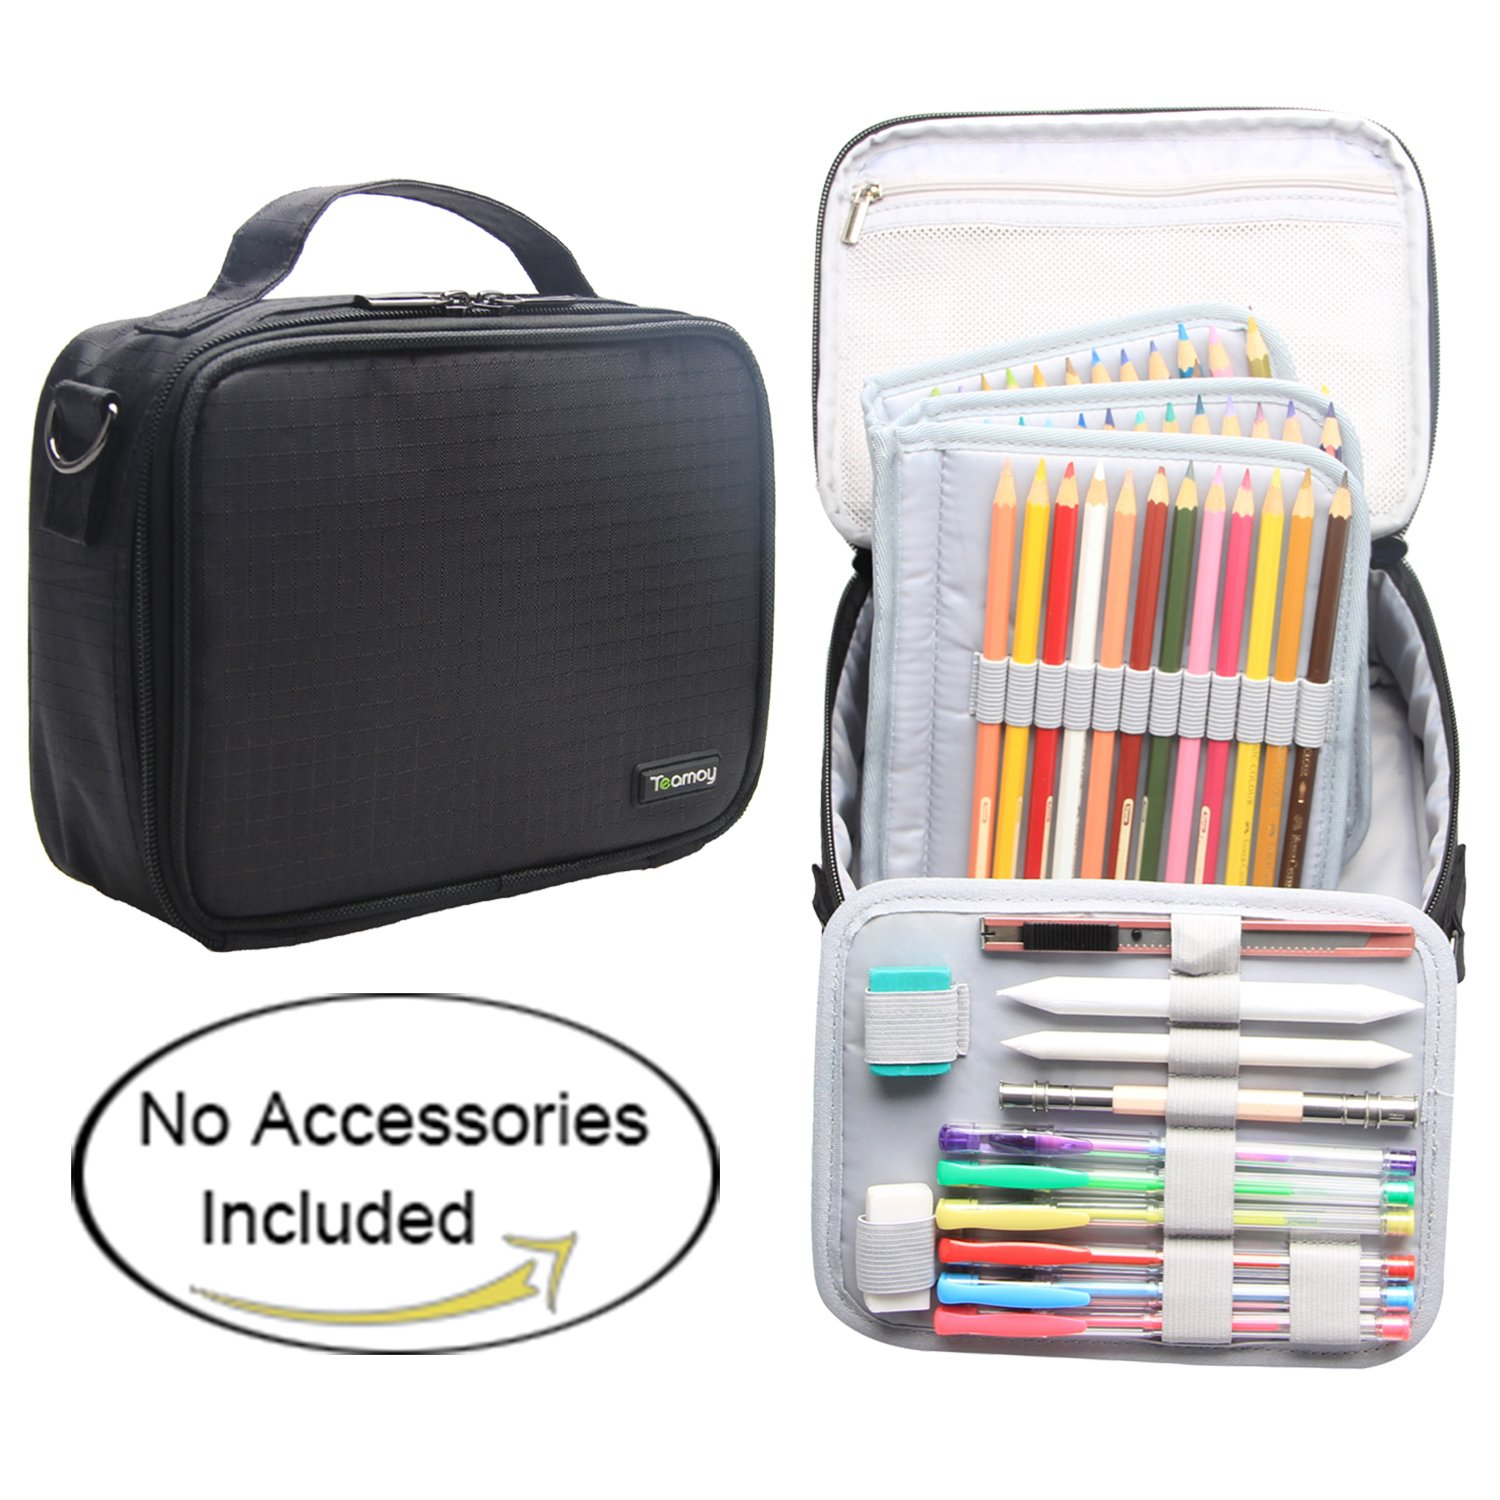 Teamoy Colored Pencils Case, Travel Gadget Bag with Handle and Shoulder Strap, Stylish and Multi-Purpose, Perfect Size for Travel or Daily Use-No Pencils Included, Black